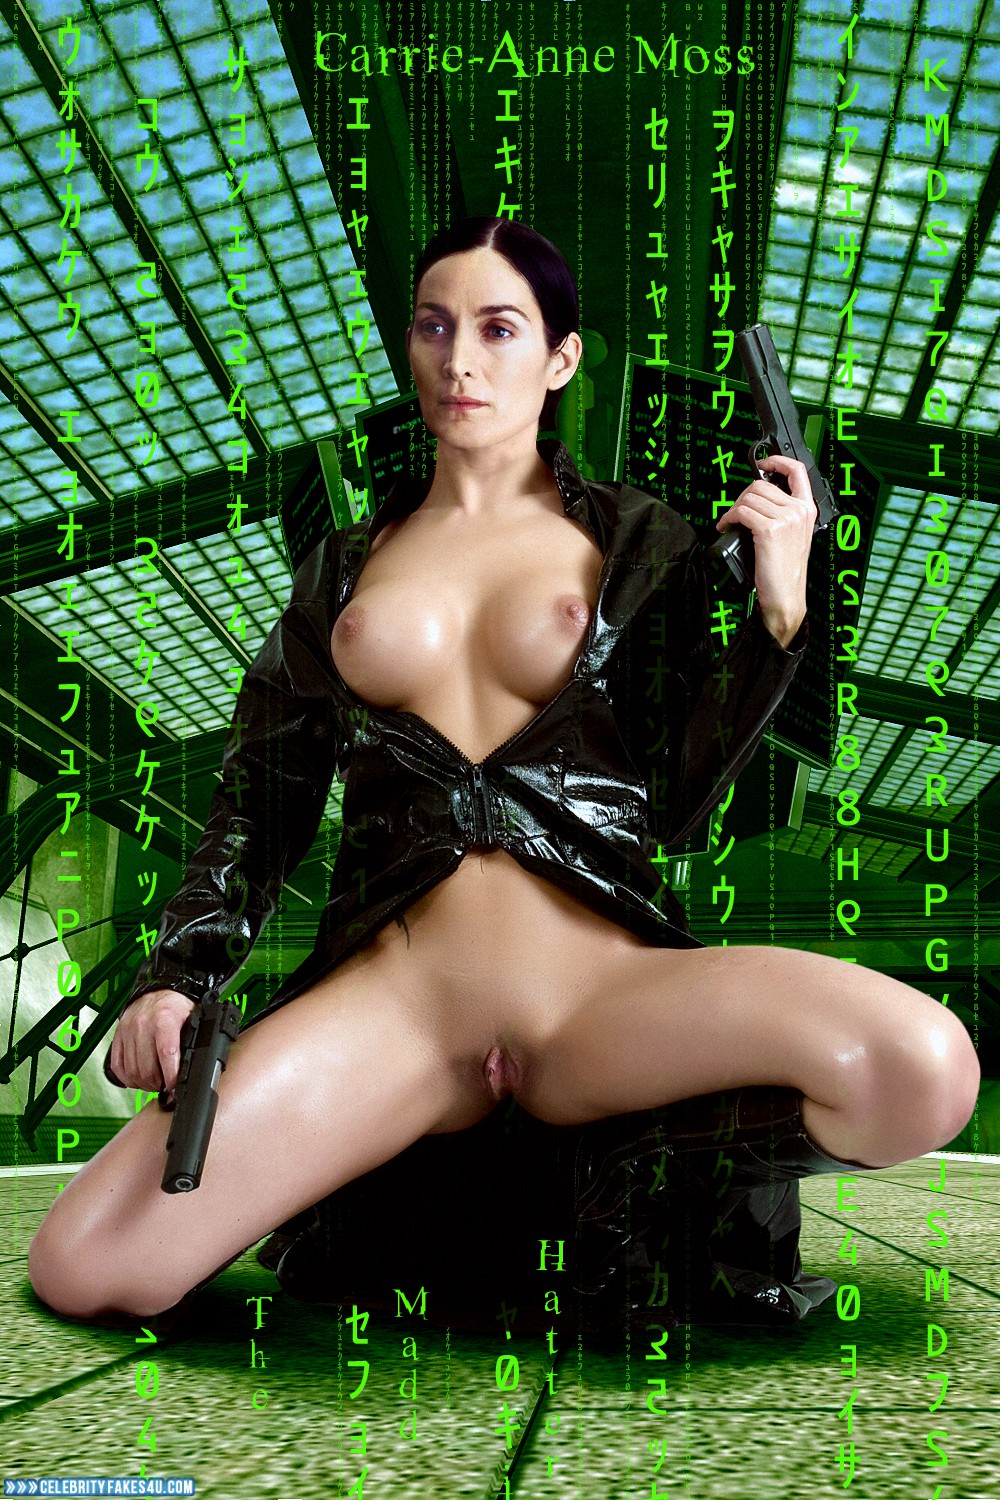 matrix carrie anne moss porno